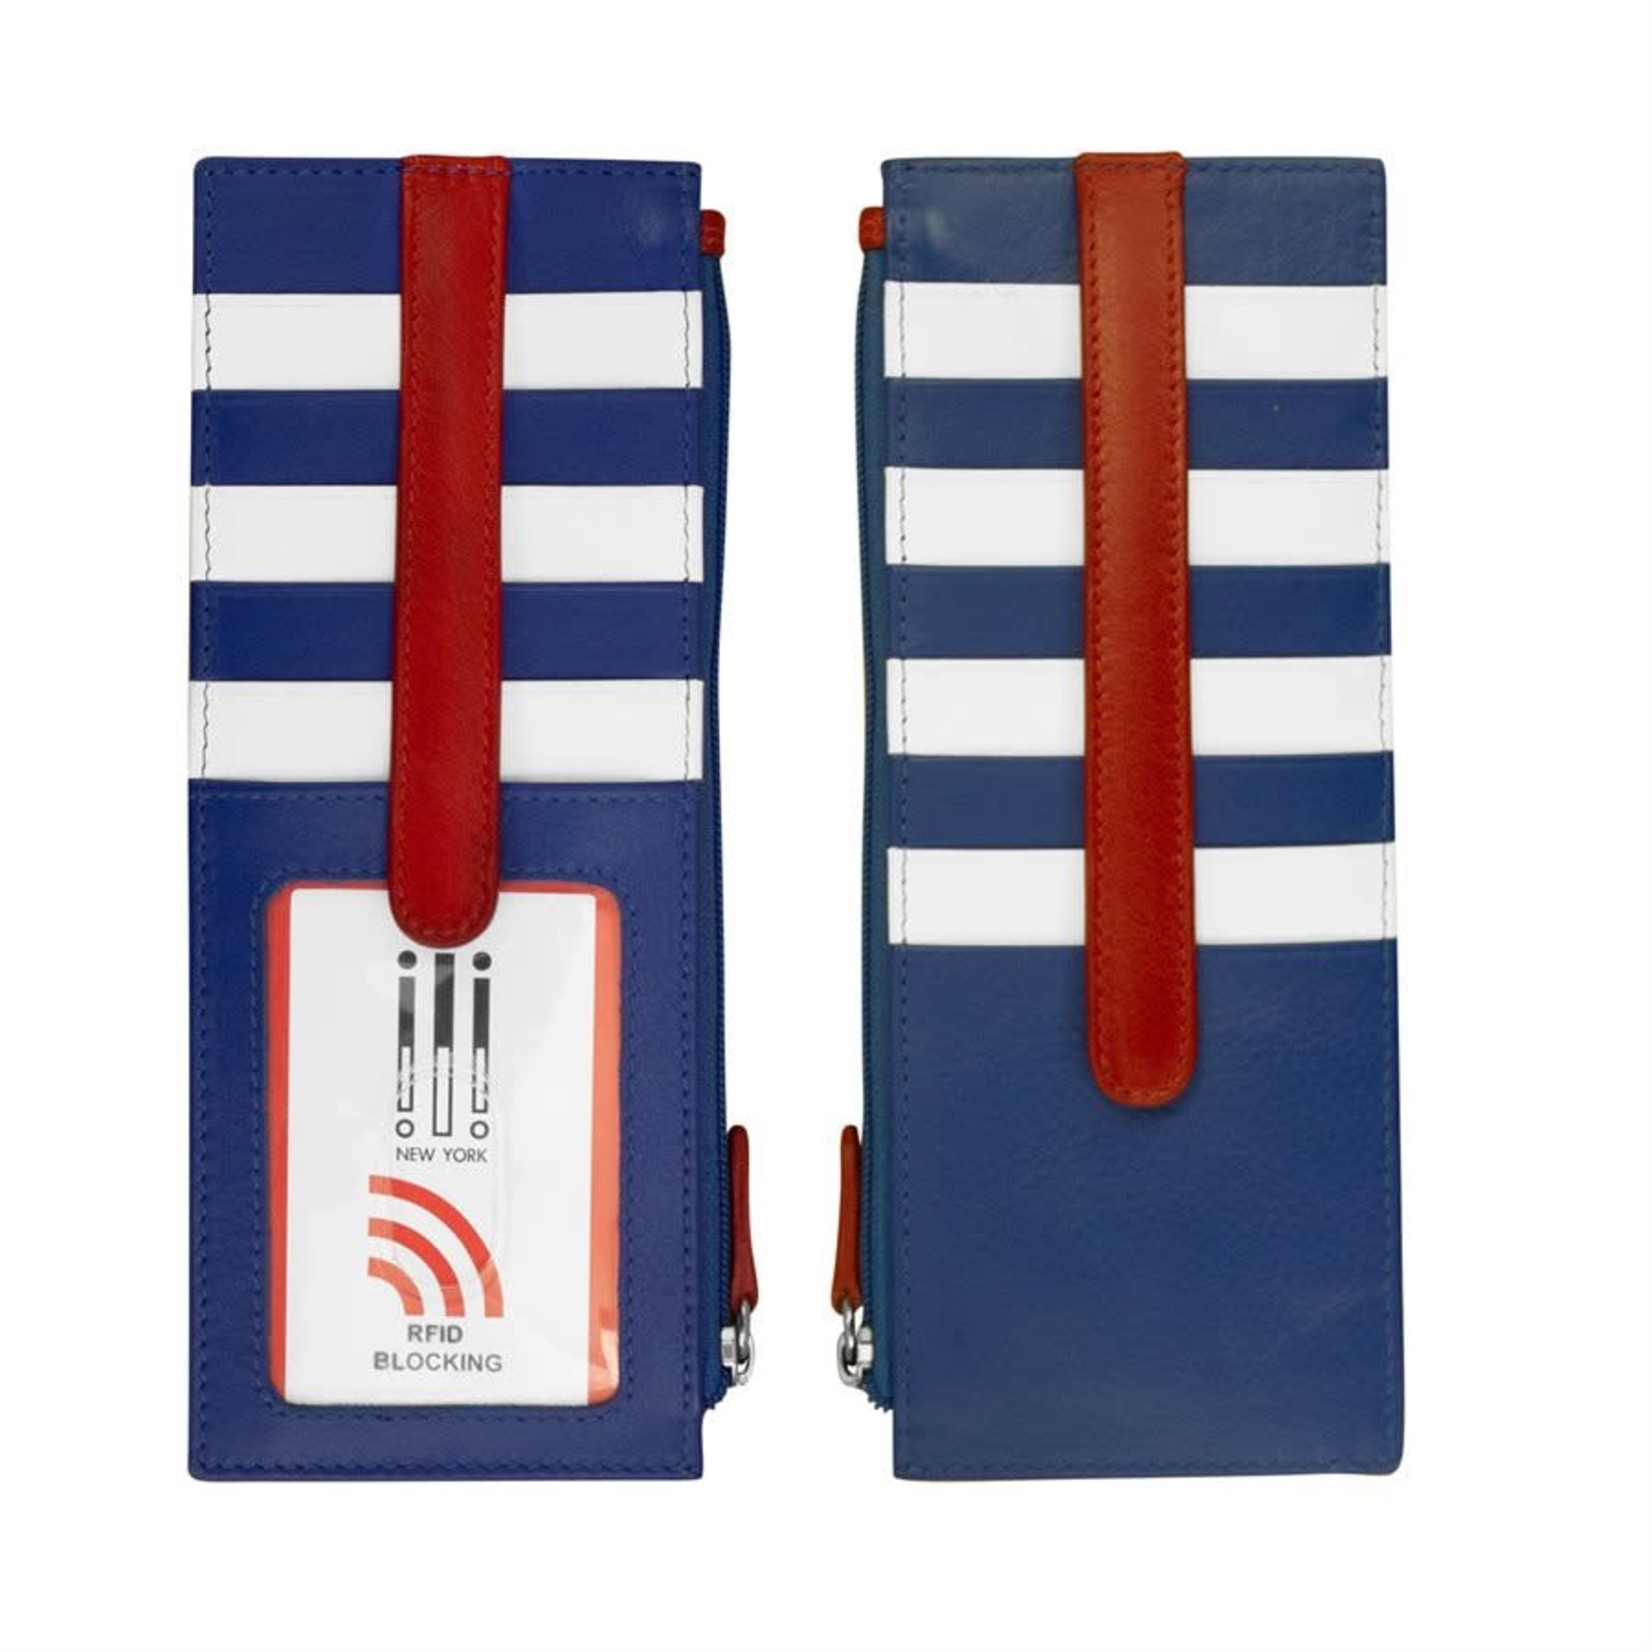 Leather Handbags and Accessories 7800 Nautical - RFID Card Holder